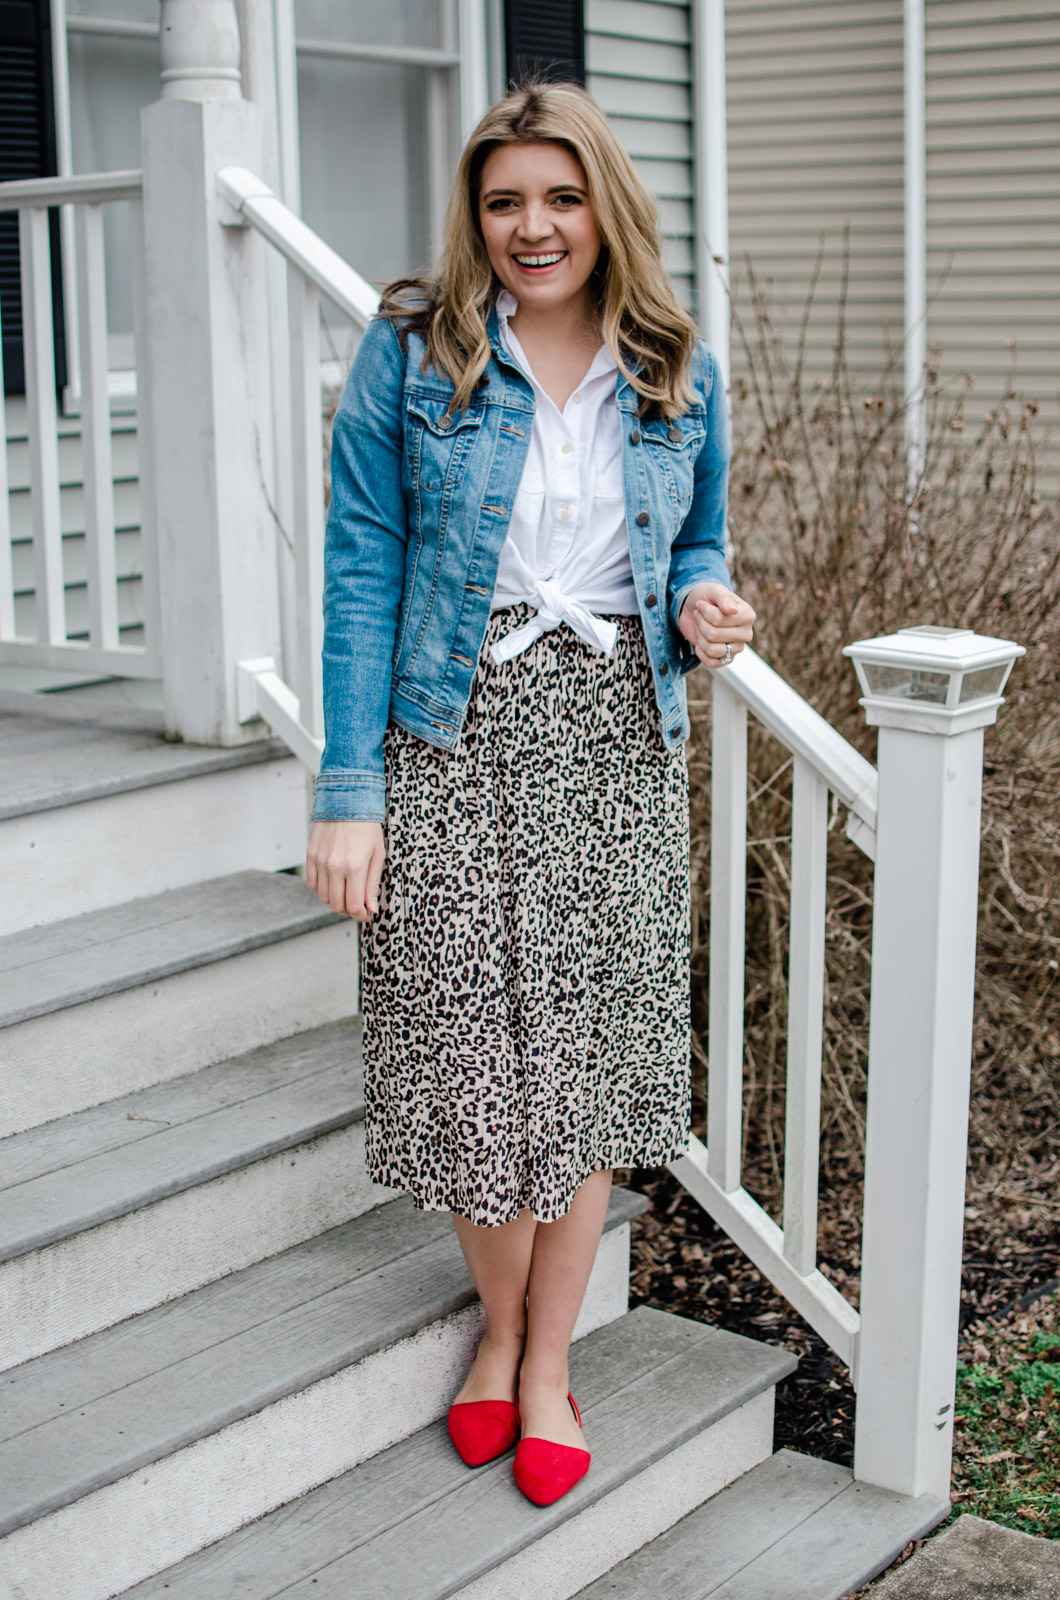 Virginia style blogger Lauren Dix shares five leopard midi skirt outfits with a pleated skirt under $35!